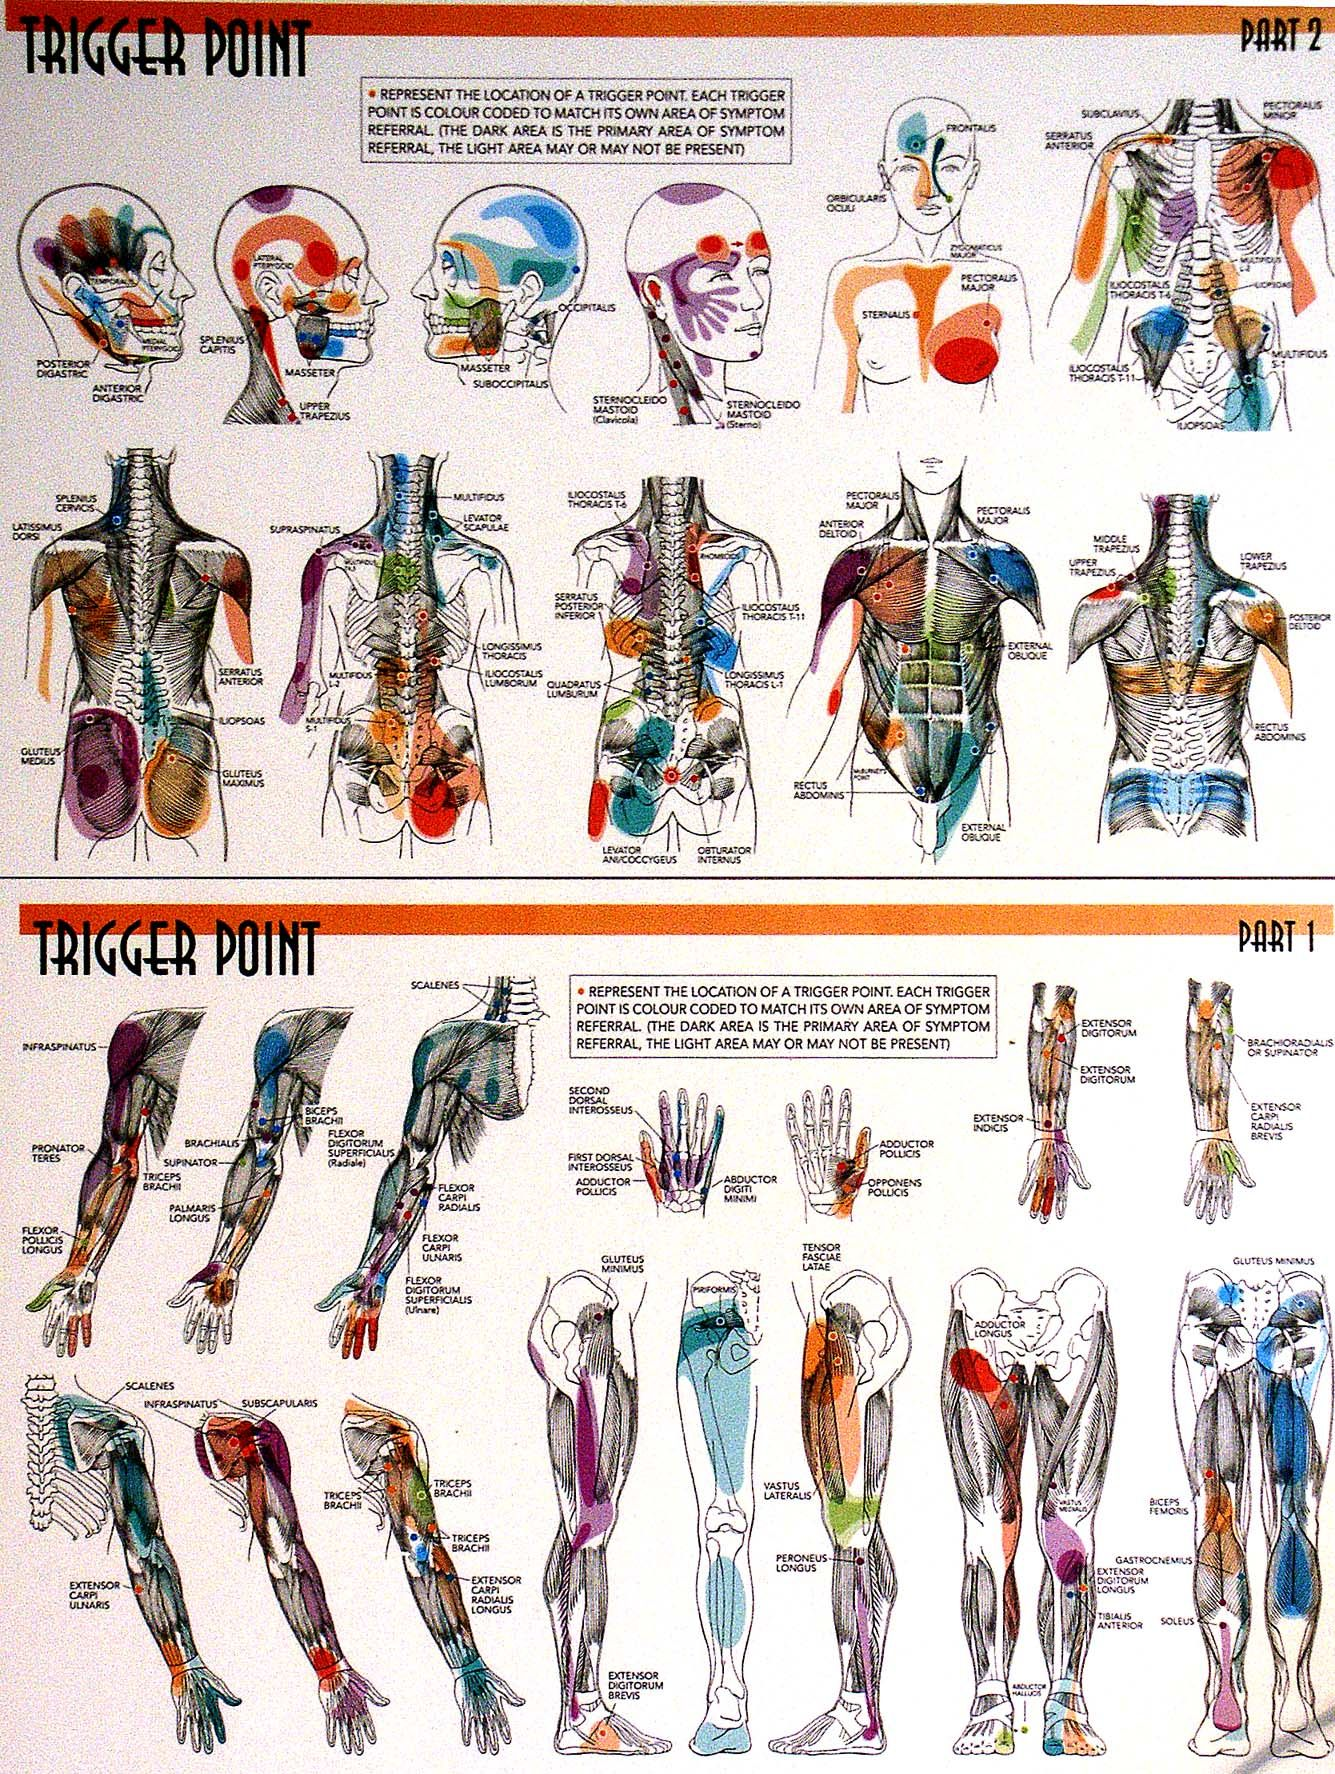 the trigger point manual pdf